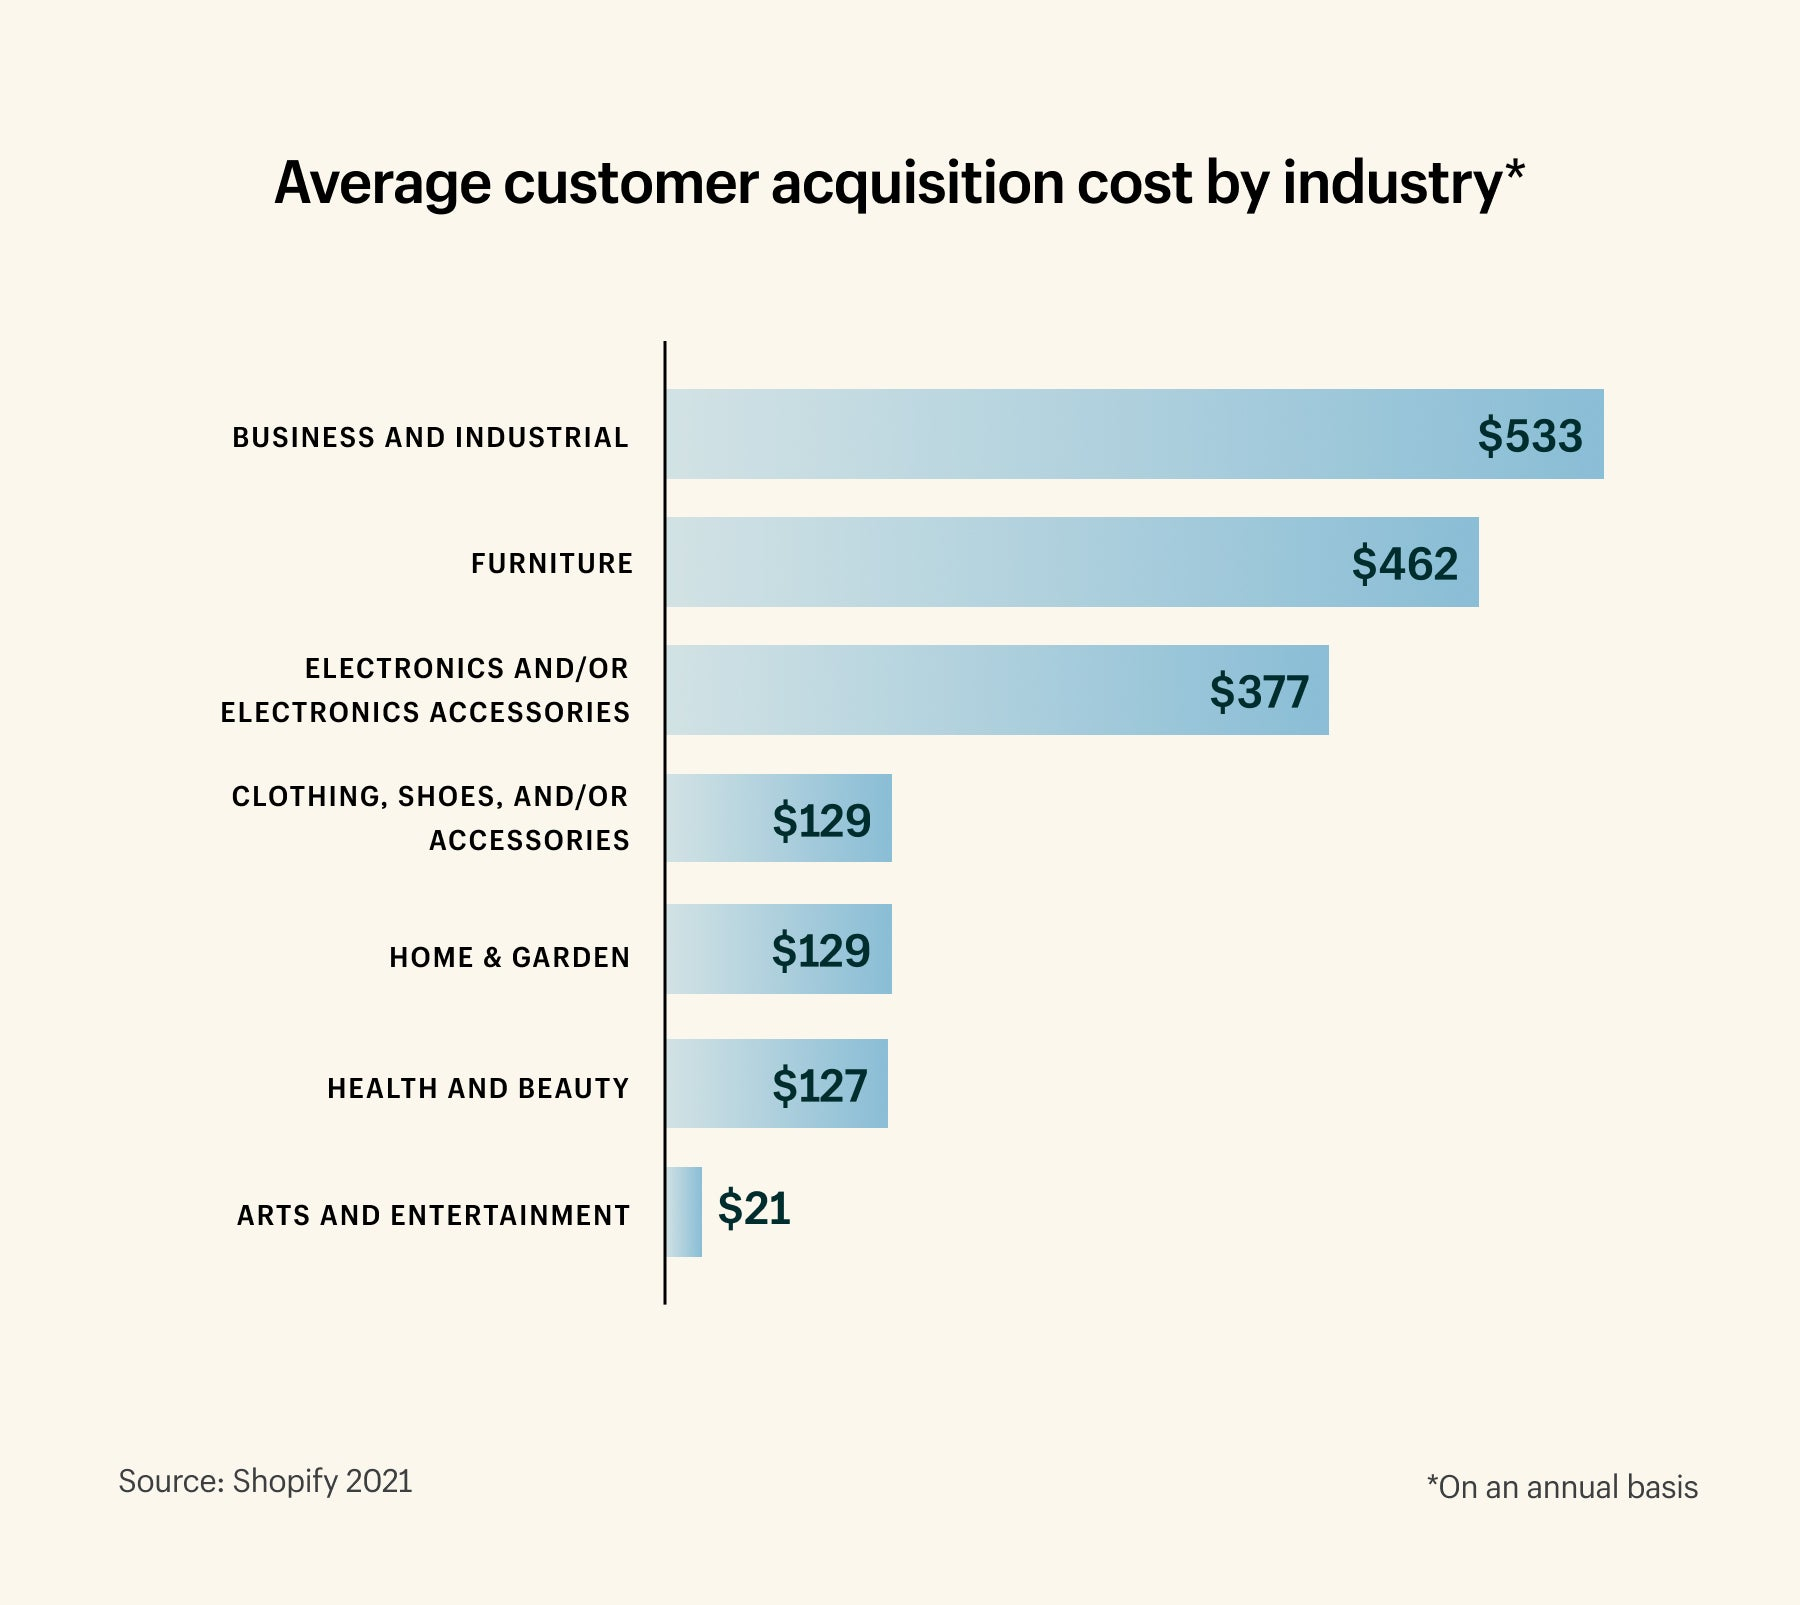 Customer acquisition cost by industry